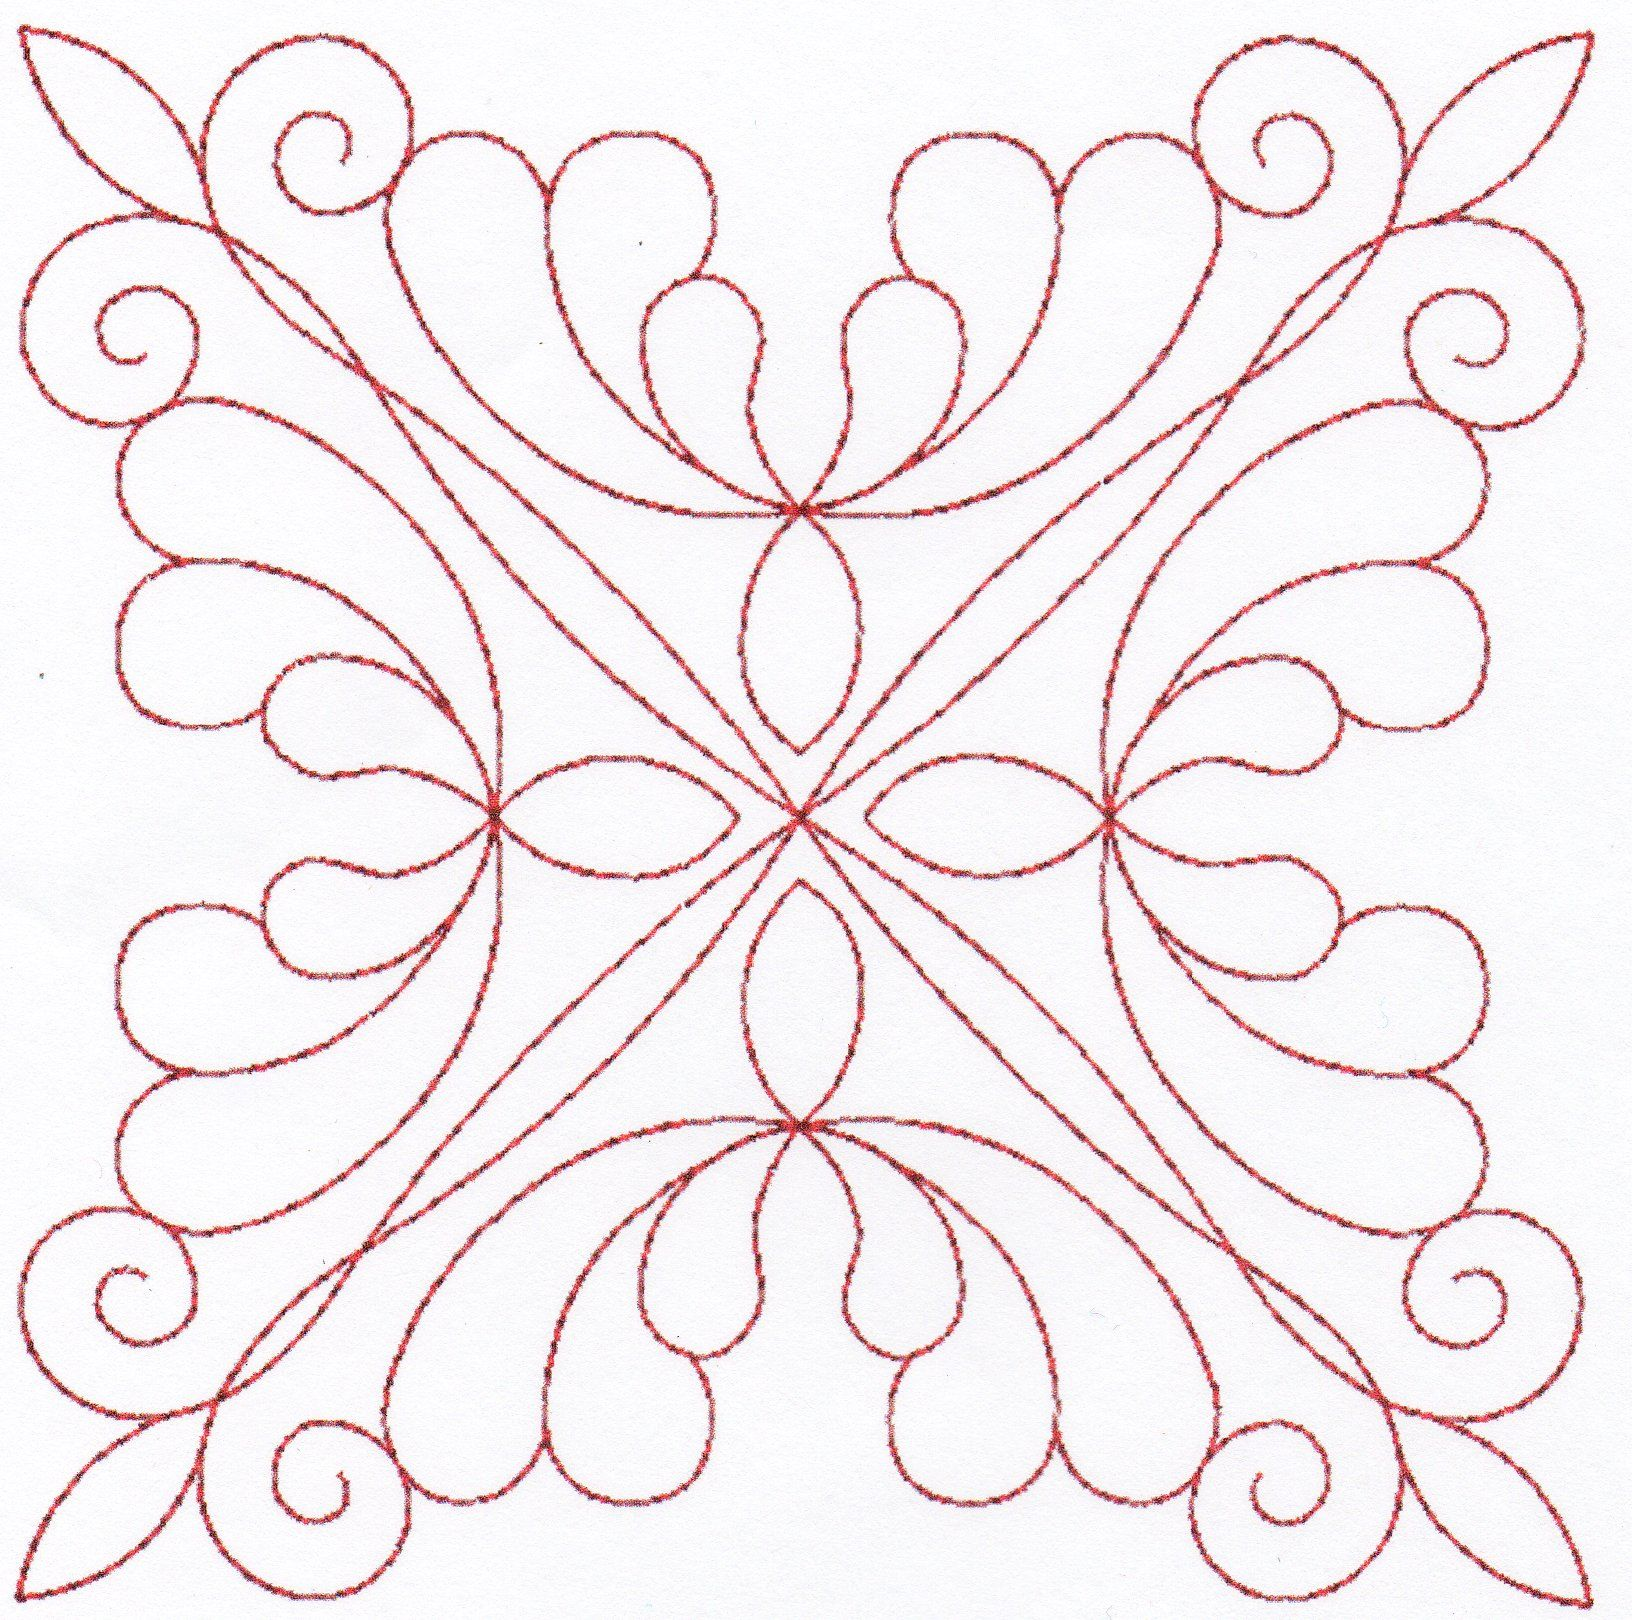 Quilt patterns and kits for quilters, sewing machines, furniture and ...